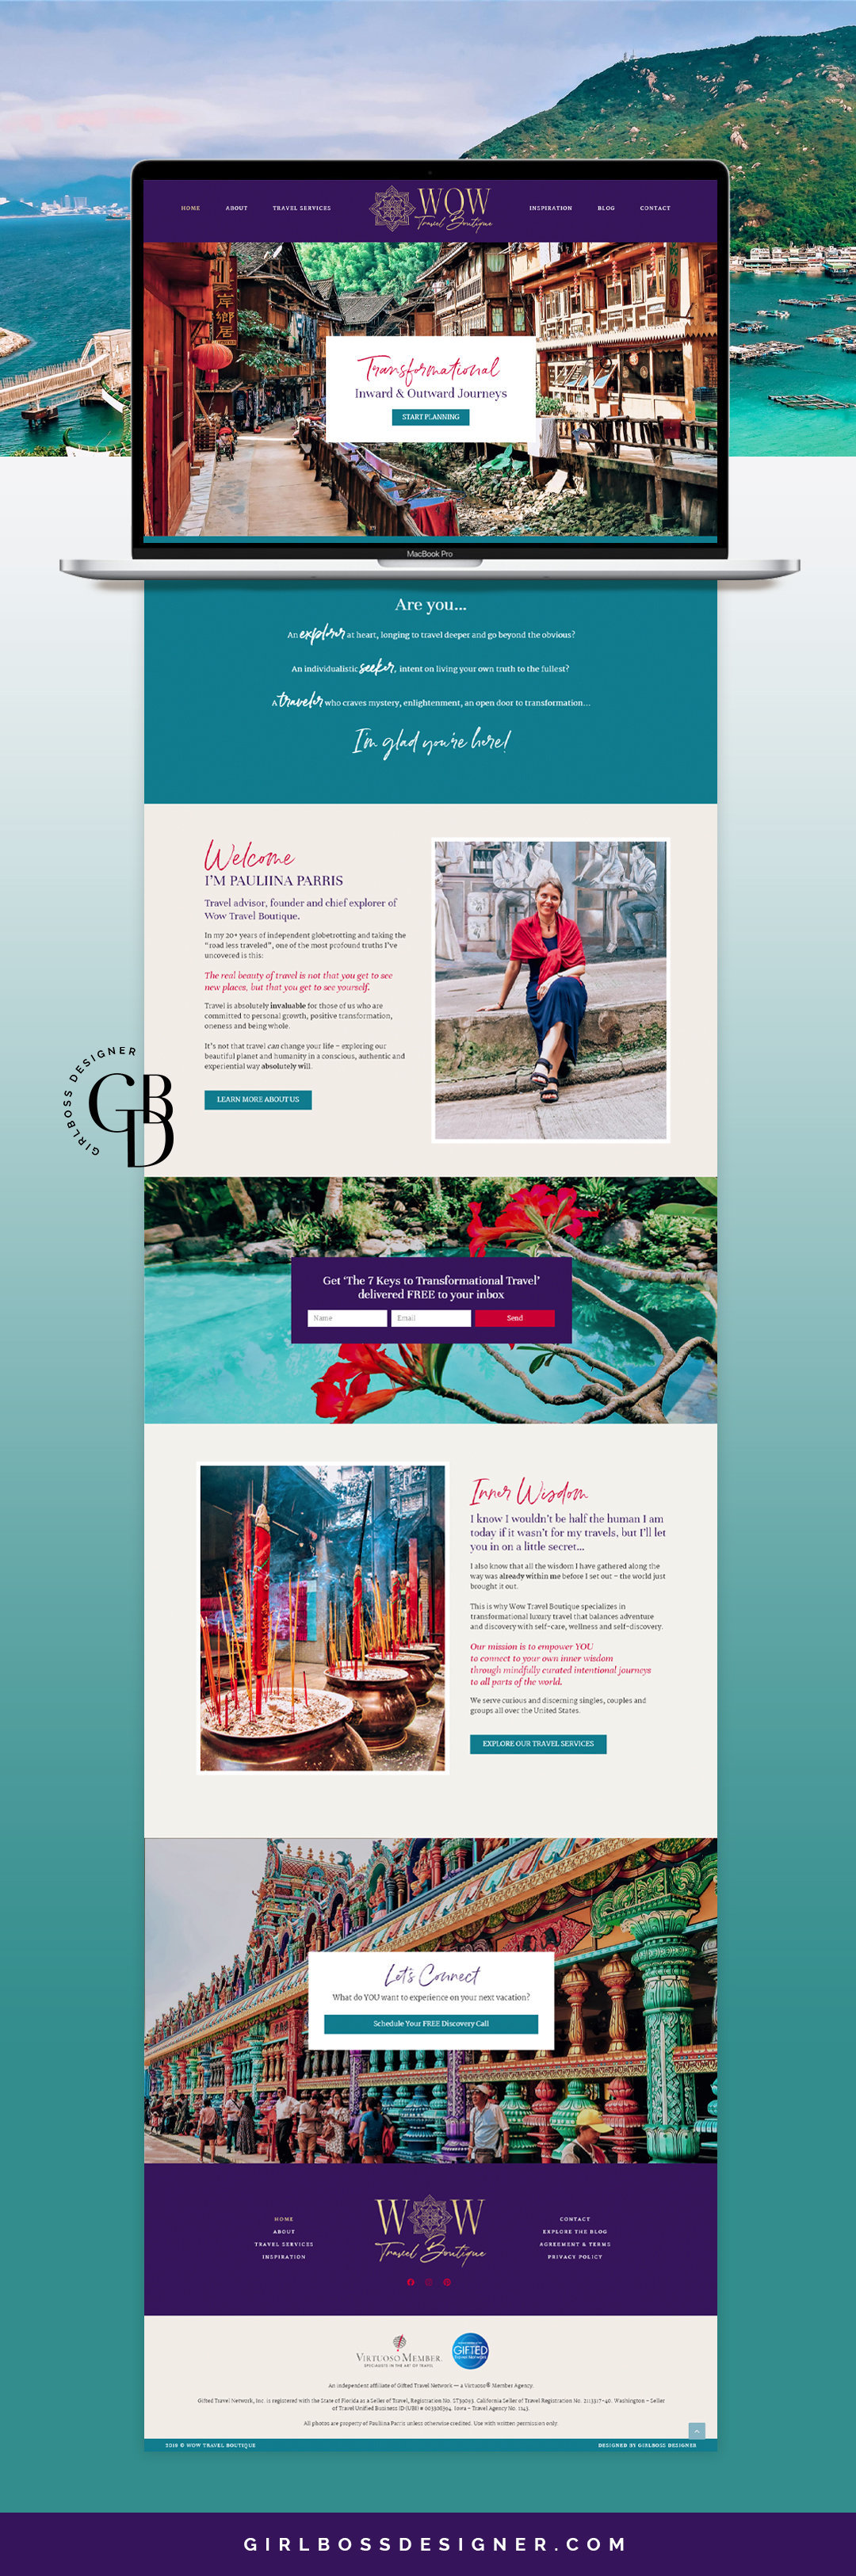 WOW Travel Boutique - Website-Mockup